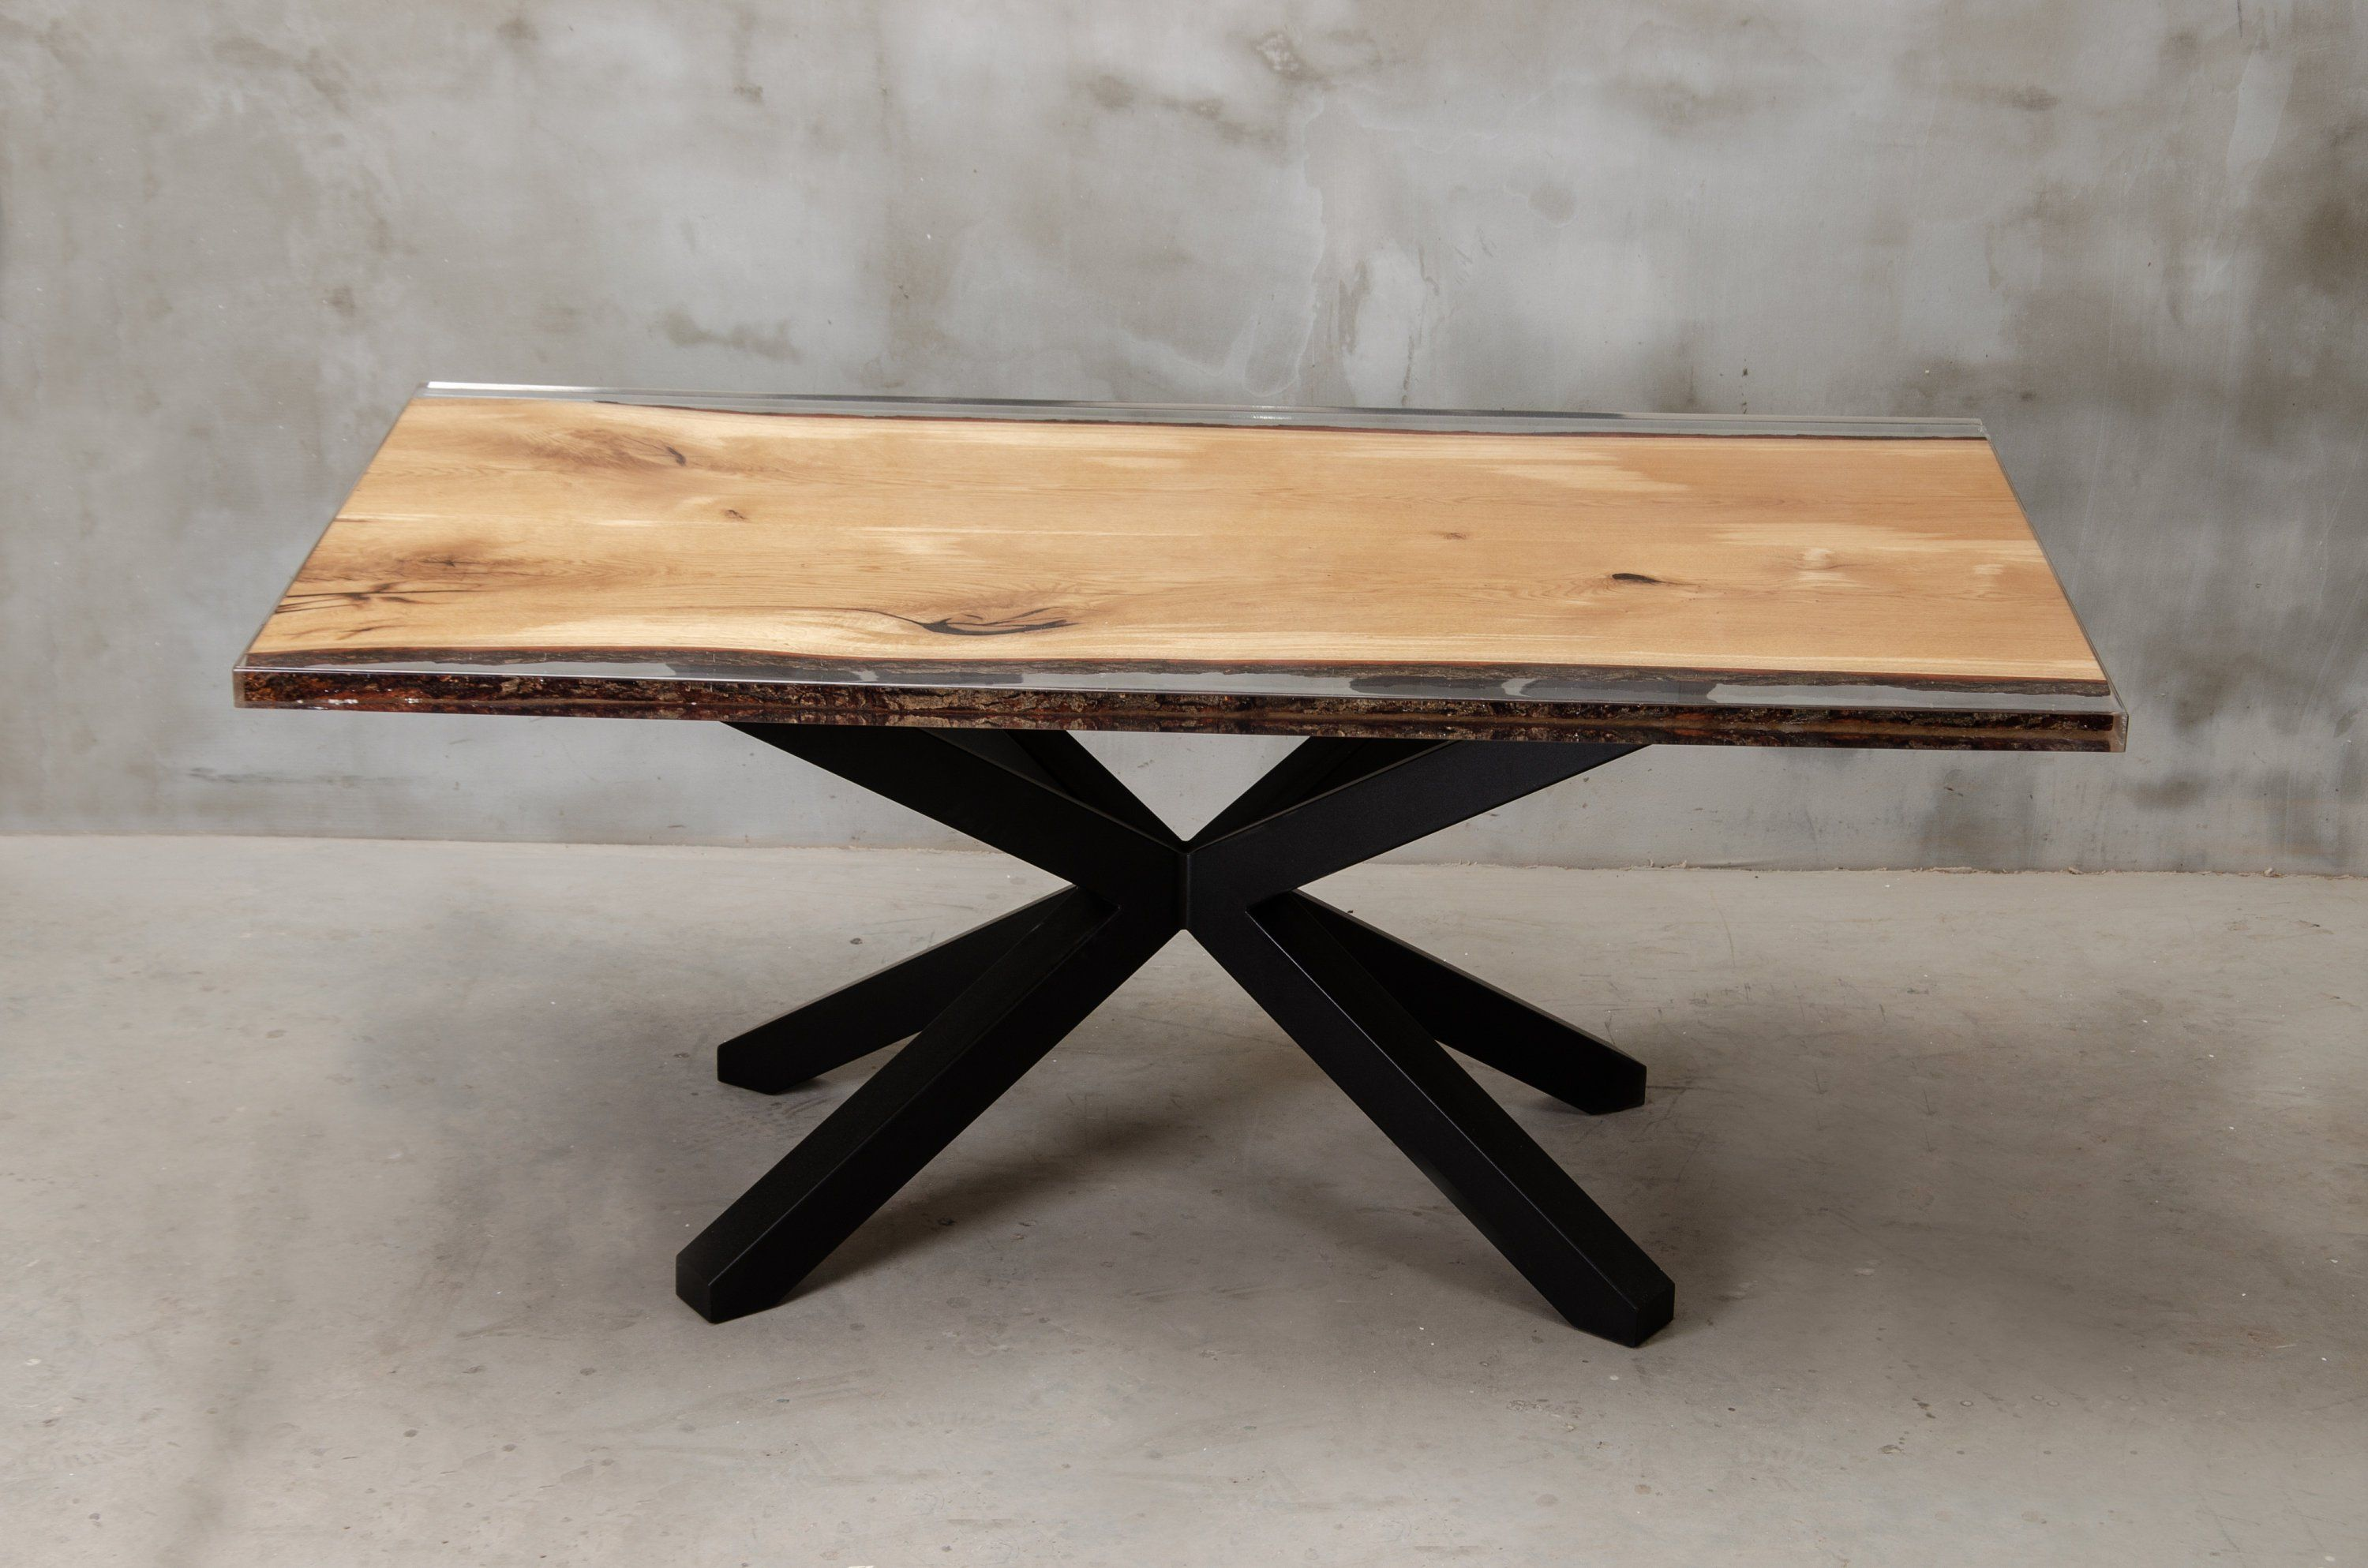 Custom Resin Epoxy Table With Metal Table Legs Live Edge Table Made Of Oak Wood Uv Resin Table Modern Dining Table Conference Table Dining Table Metal Dining Table Metal Table Legs [ 1987 x 3000 Pixel ]